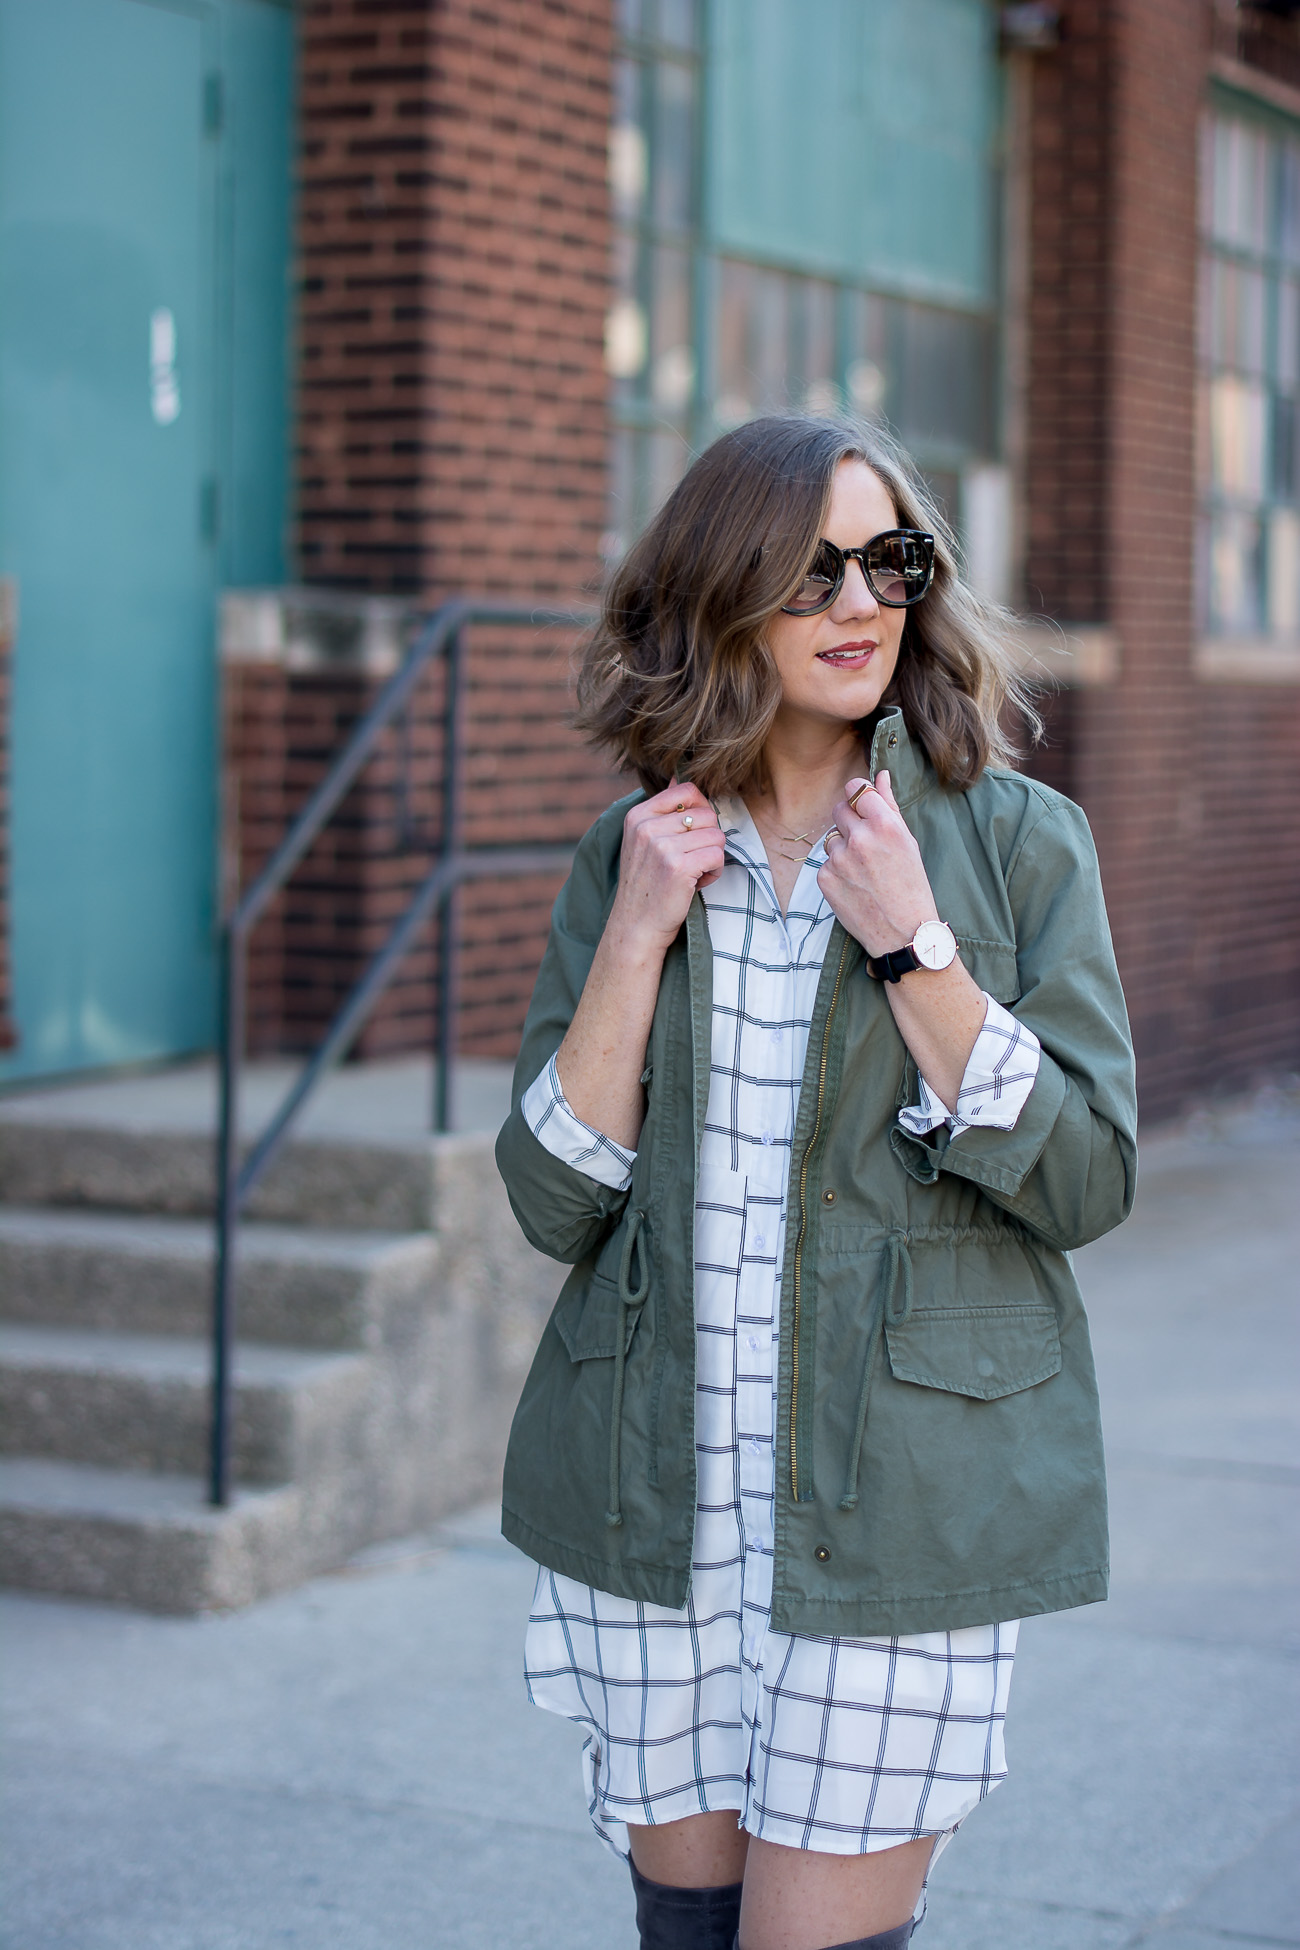 designer-dupe-round-sunglasses-cargo-jacket-black-and-white-grid-print-shirtdress-gray-over-the-knee-boots-delicate-jewelry